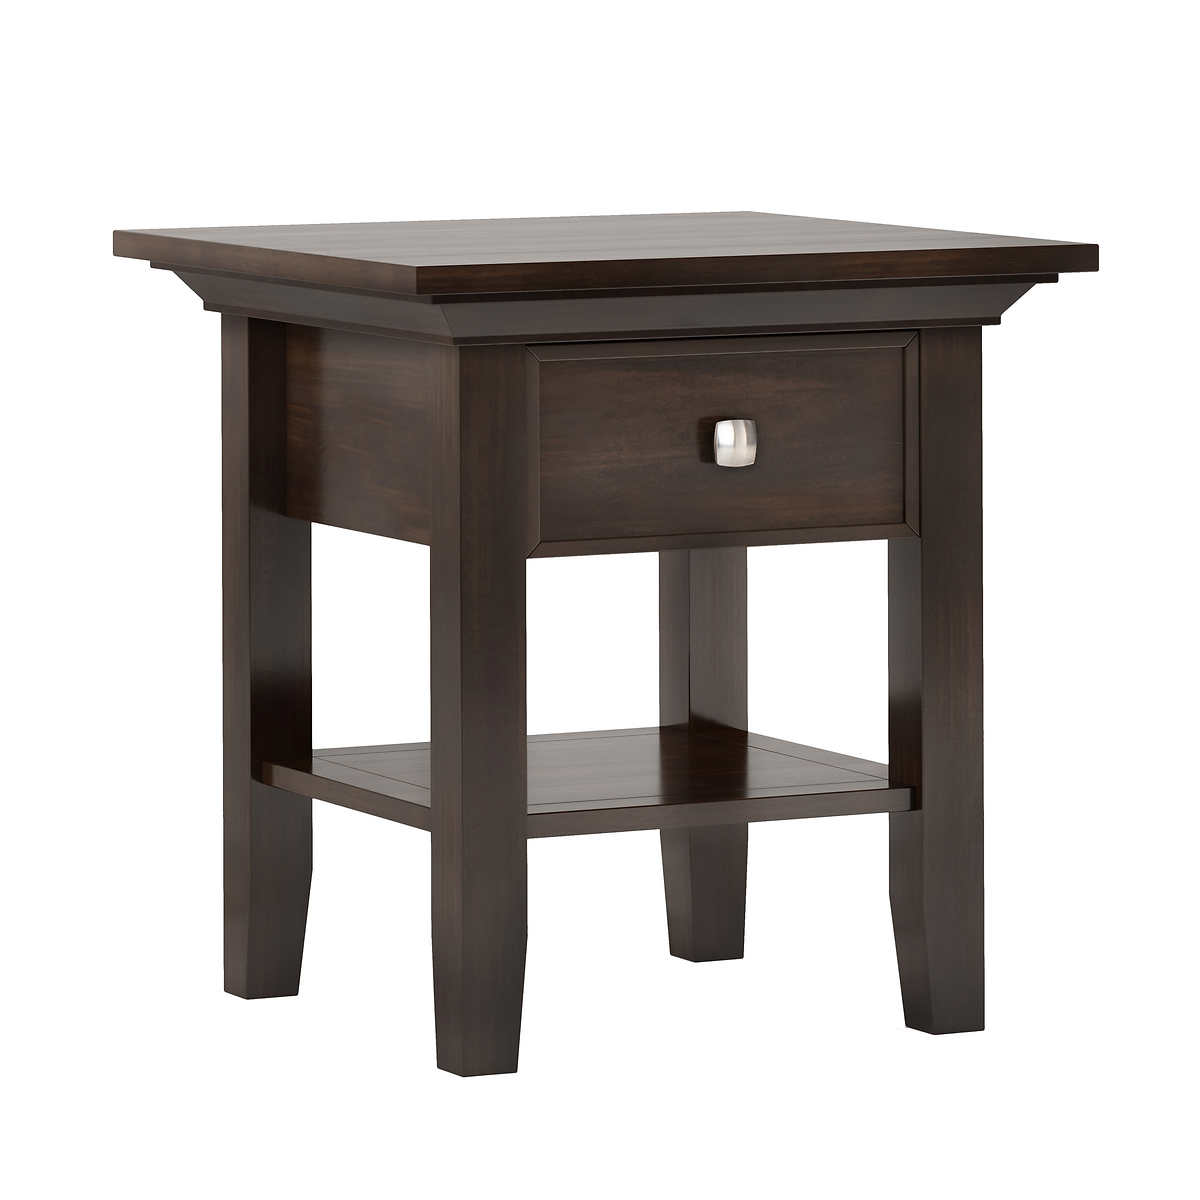 Cypress Hills Greystone Rustic End Table